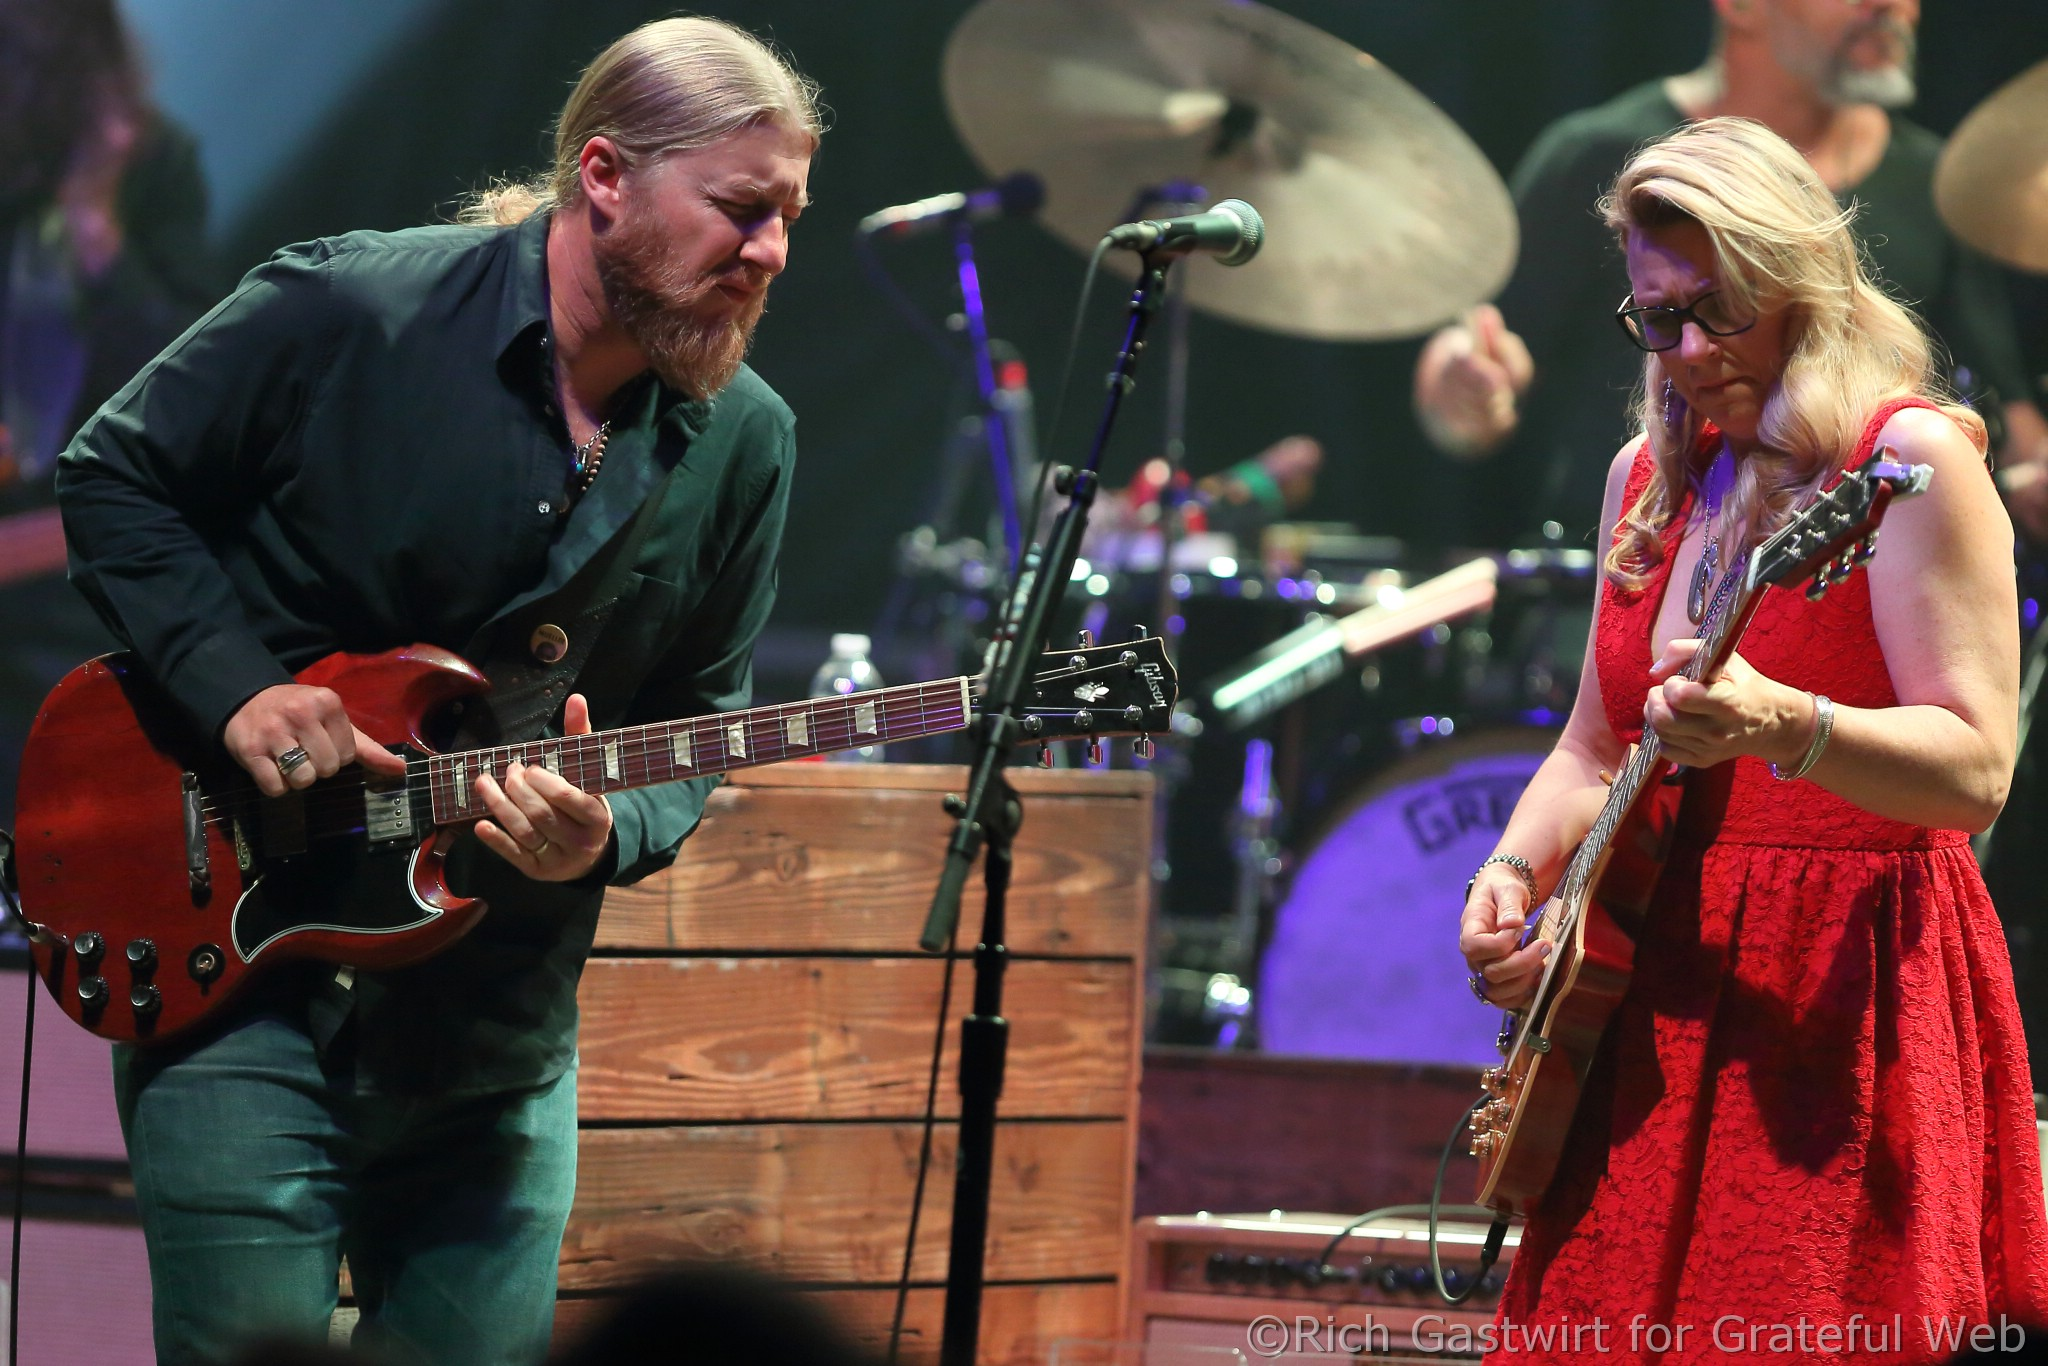 TEDESCHI TRUCKS BAND GEARS UP FOR SIX-NIGHT BEACON THEATRE RESIDENCY